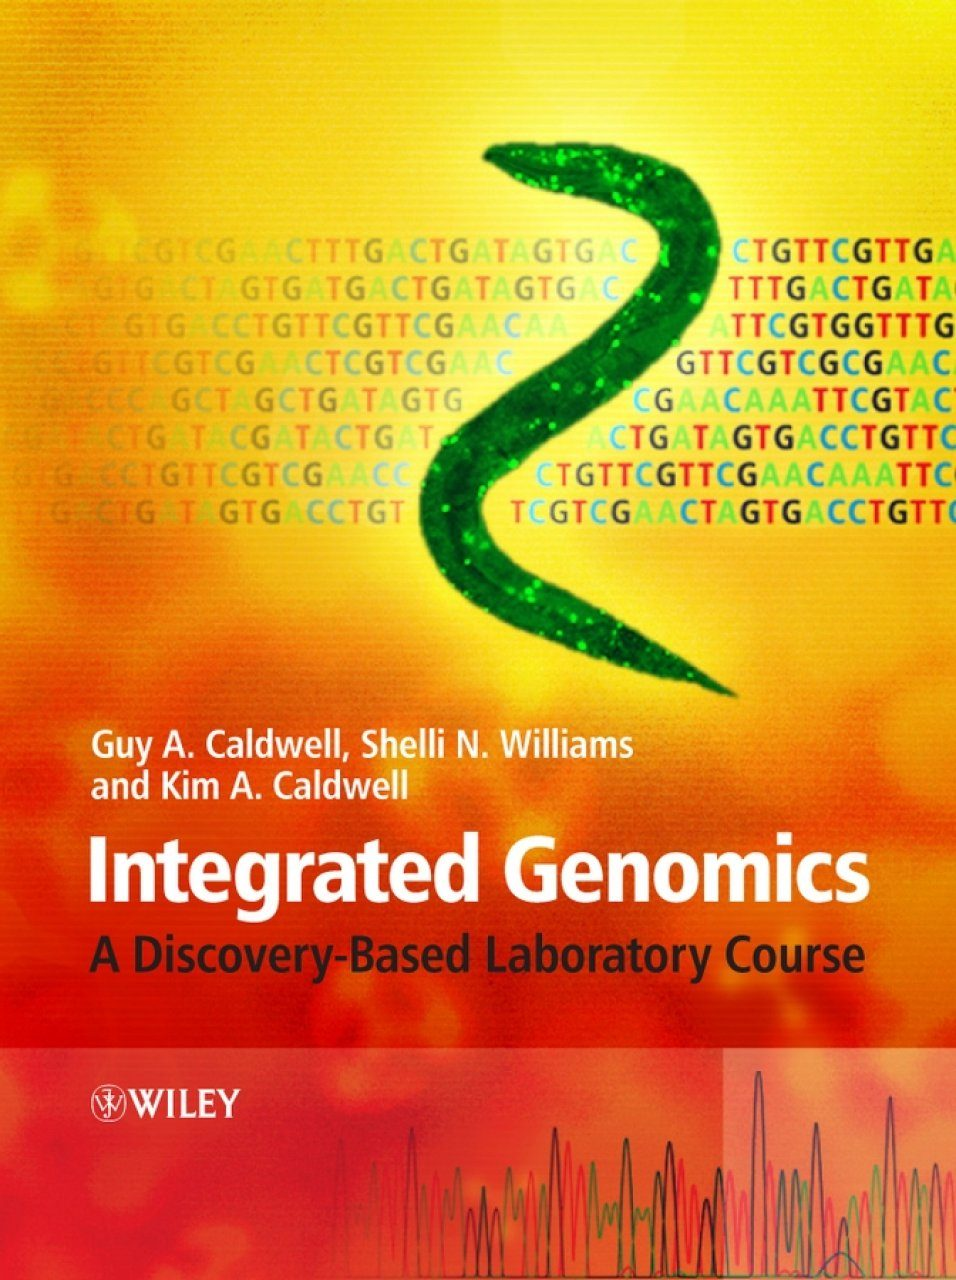 Integrated Genomics